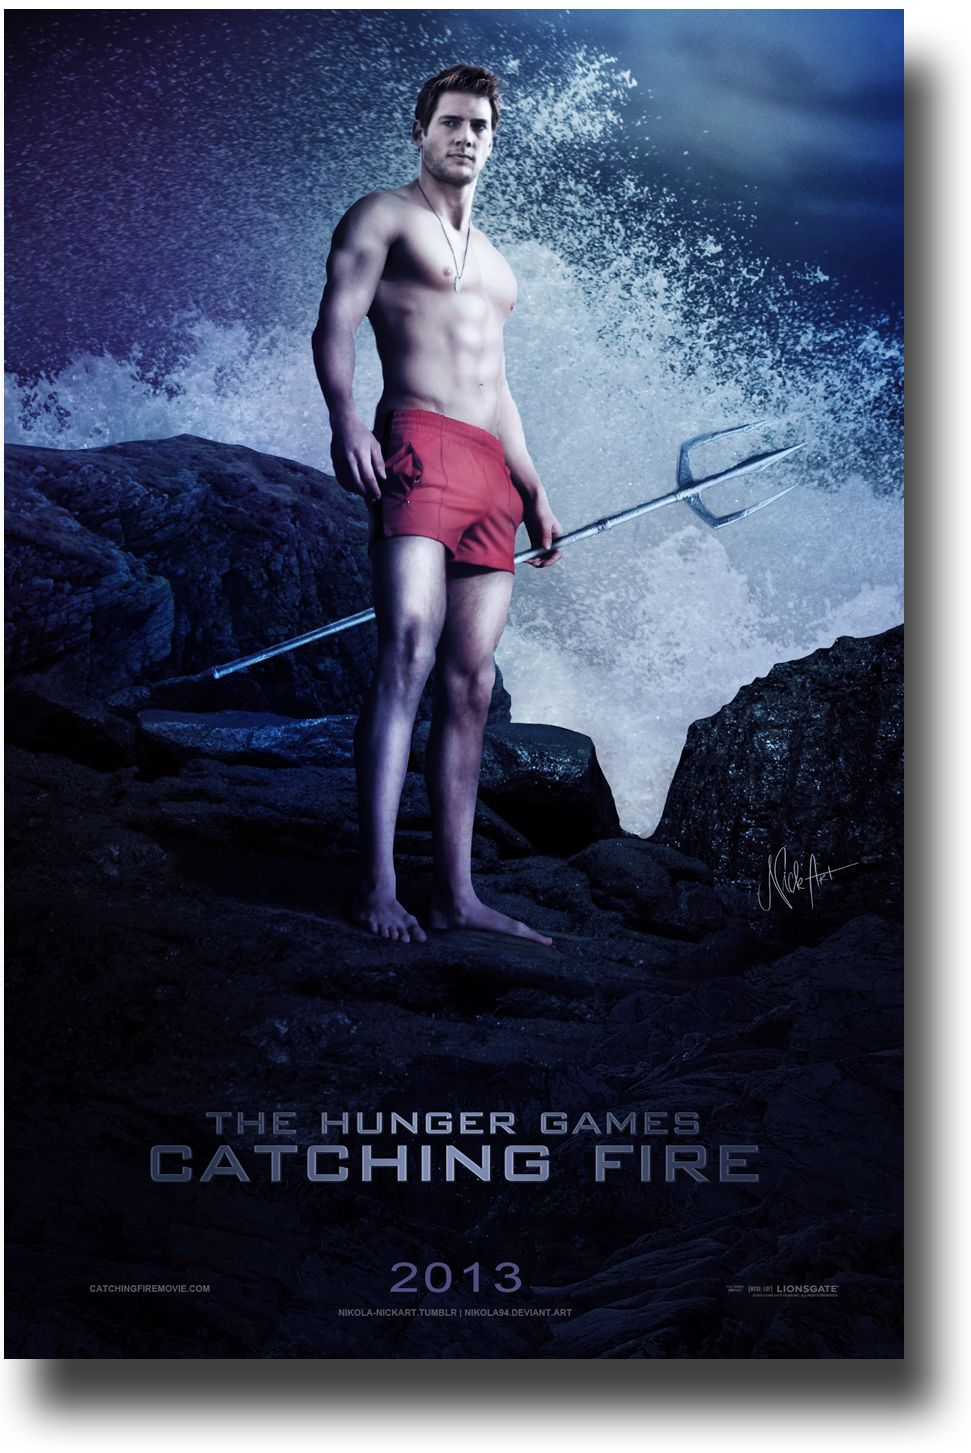 Catching Fire Poster - Hunger Games 2013 Promo Flyer ...